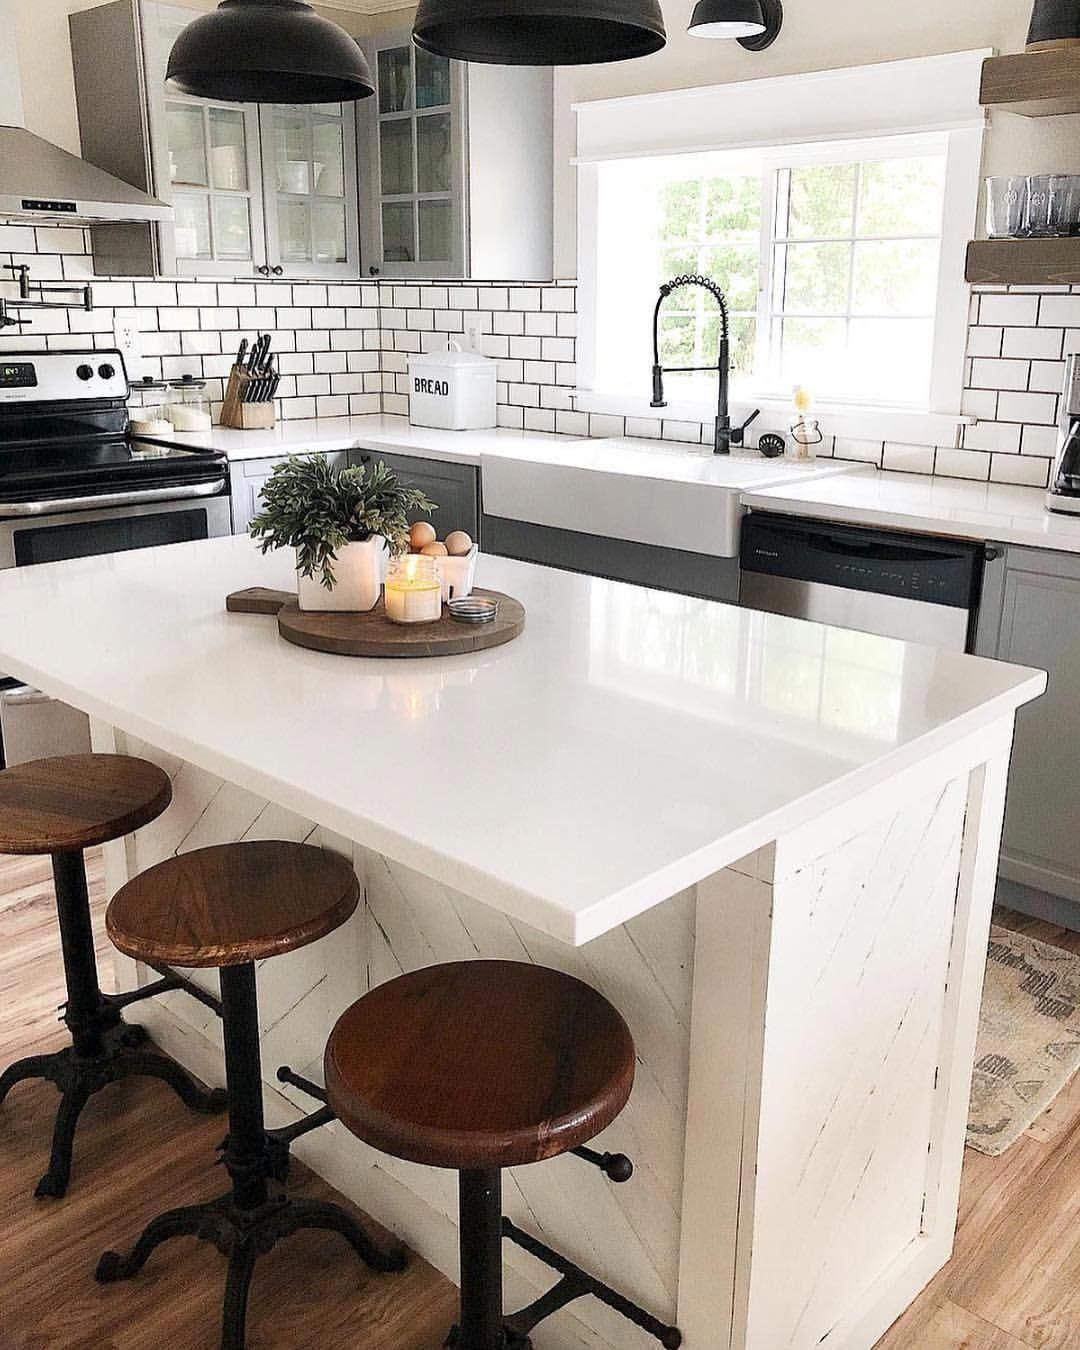 kitchen island with seating large kitchen island with storage rustic wood kitchen island on kitchen island ideas modern farmhouse id=49833